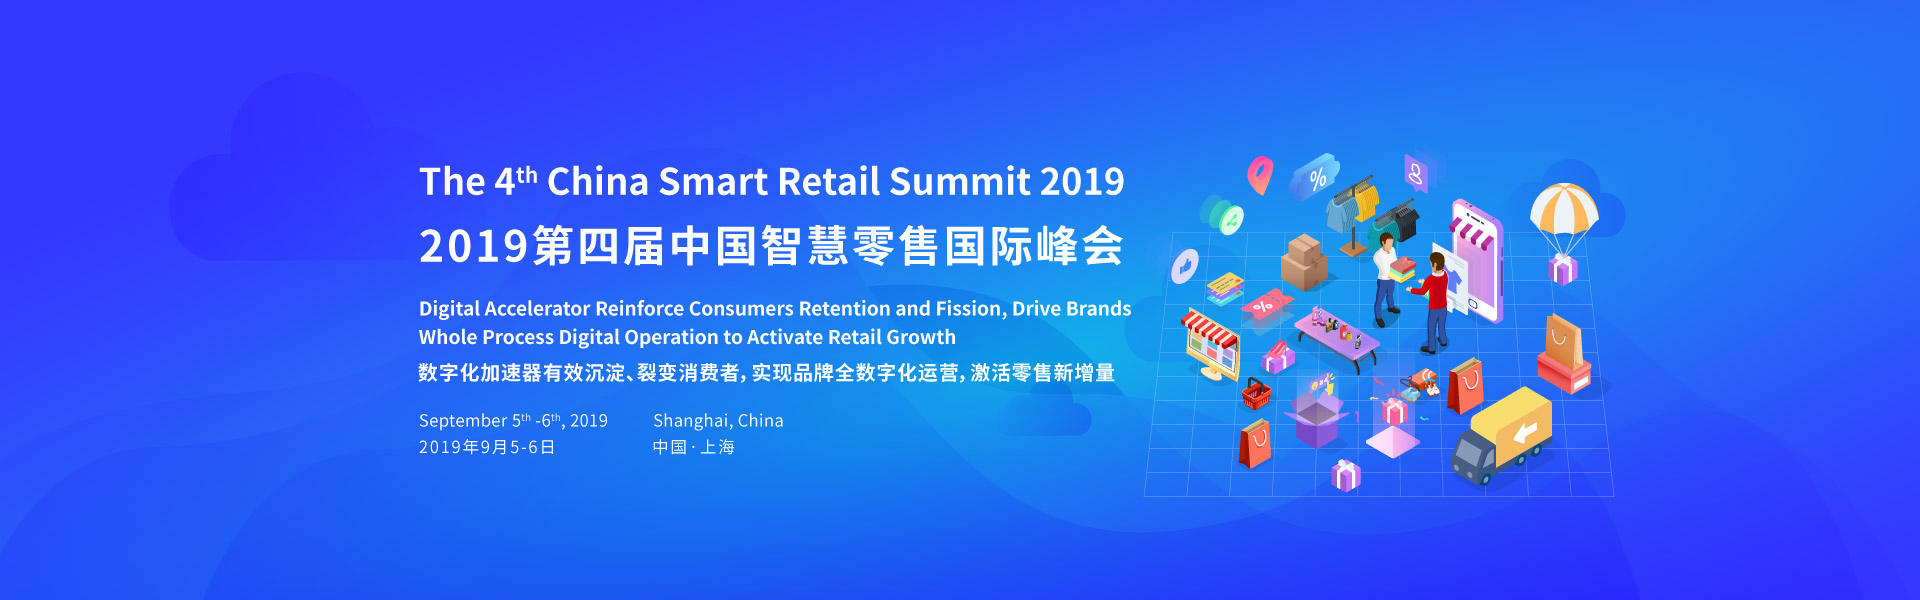 The 4th China Smart Retail Summit 2019